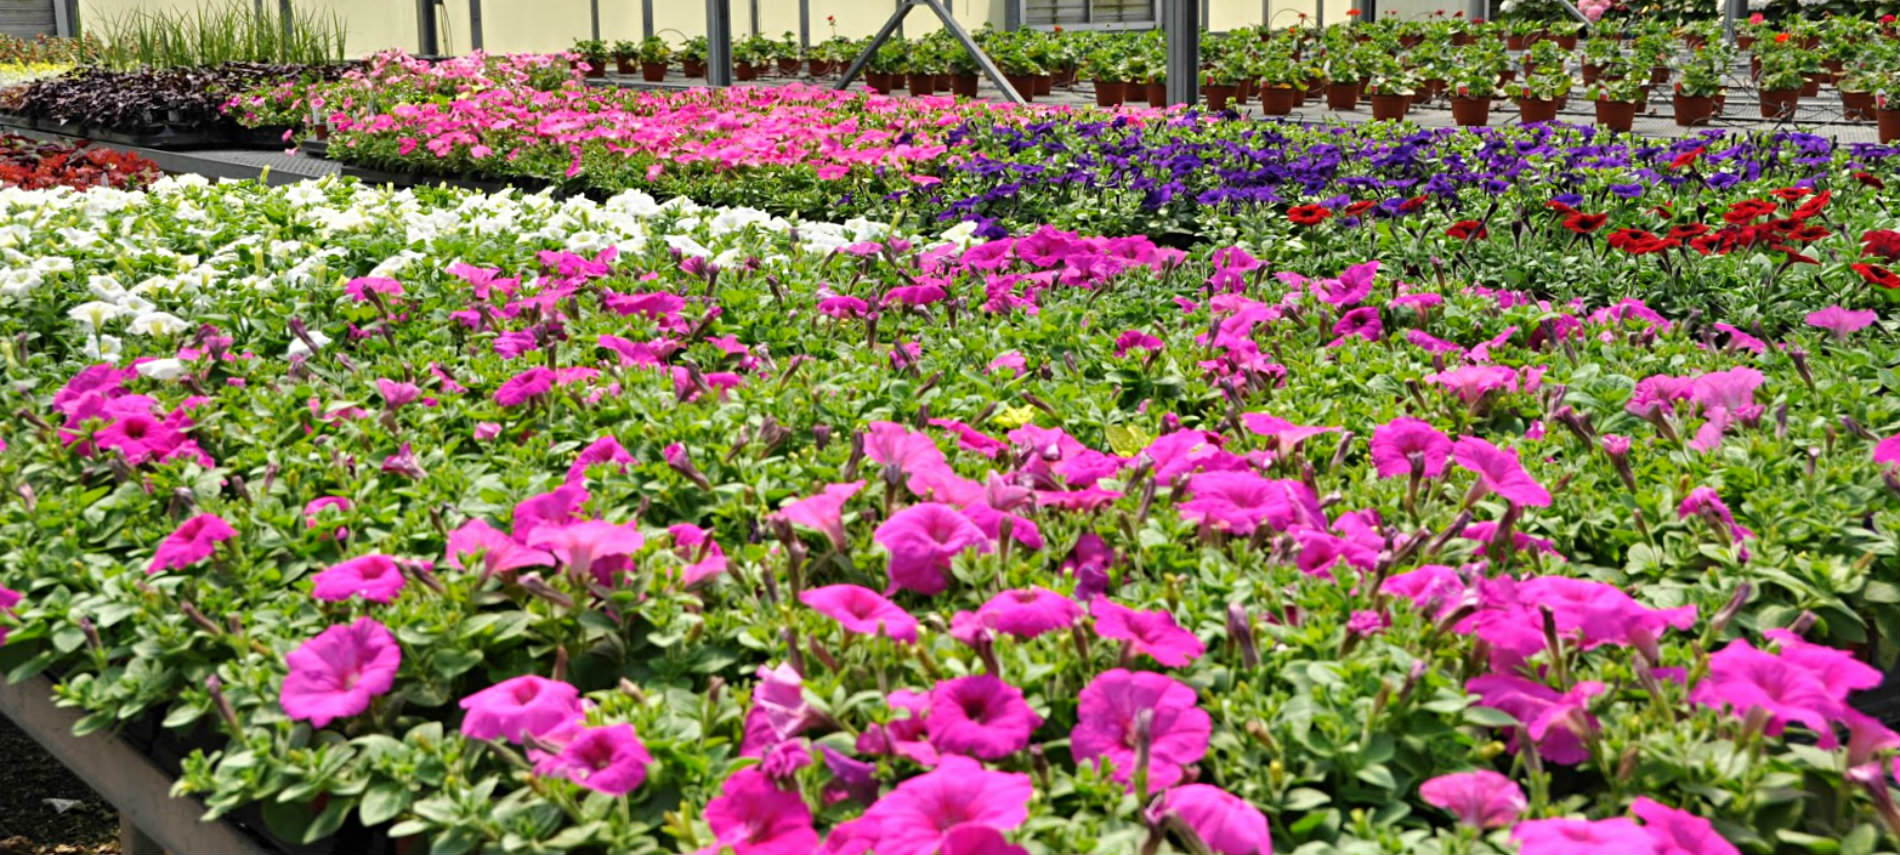 Gardens with variety of flowers with vivid pink, purple, white and red colors, clay pots.